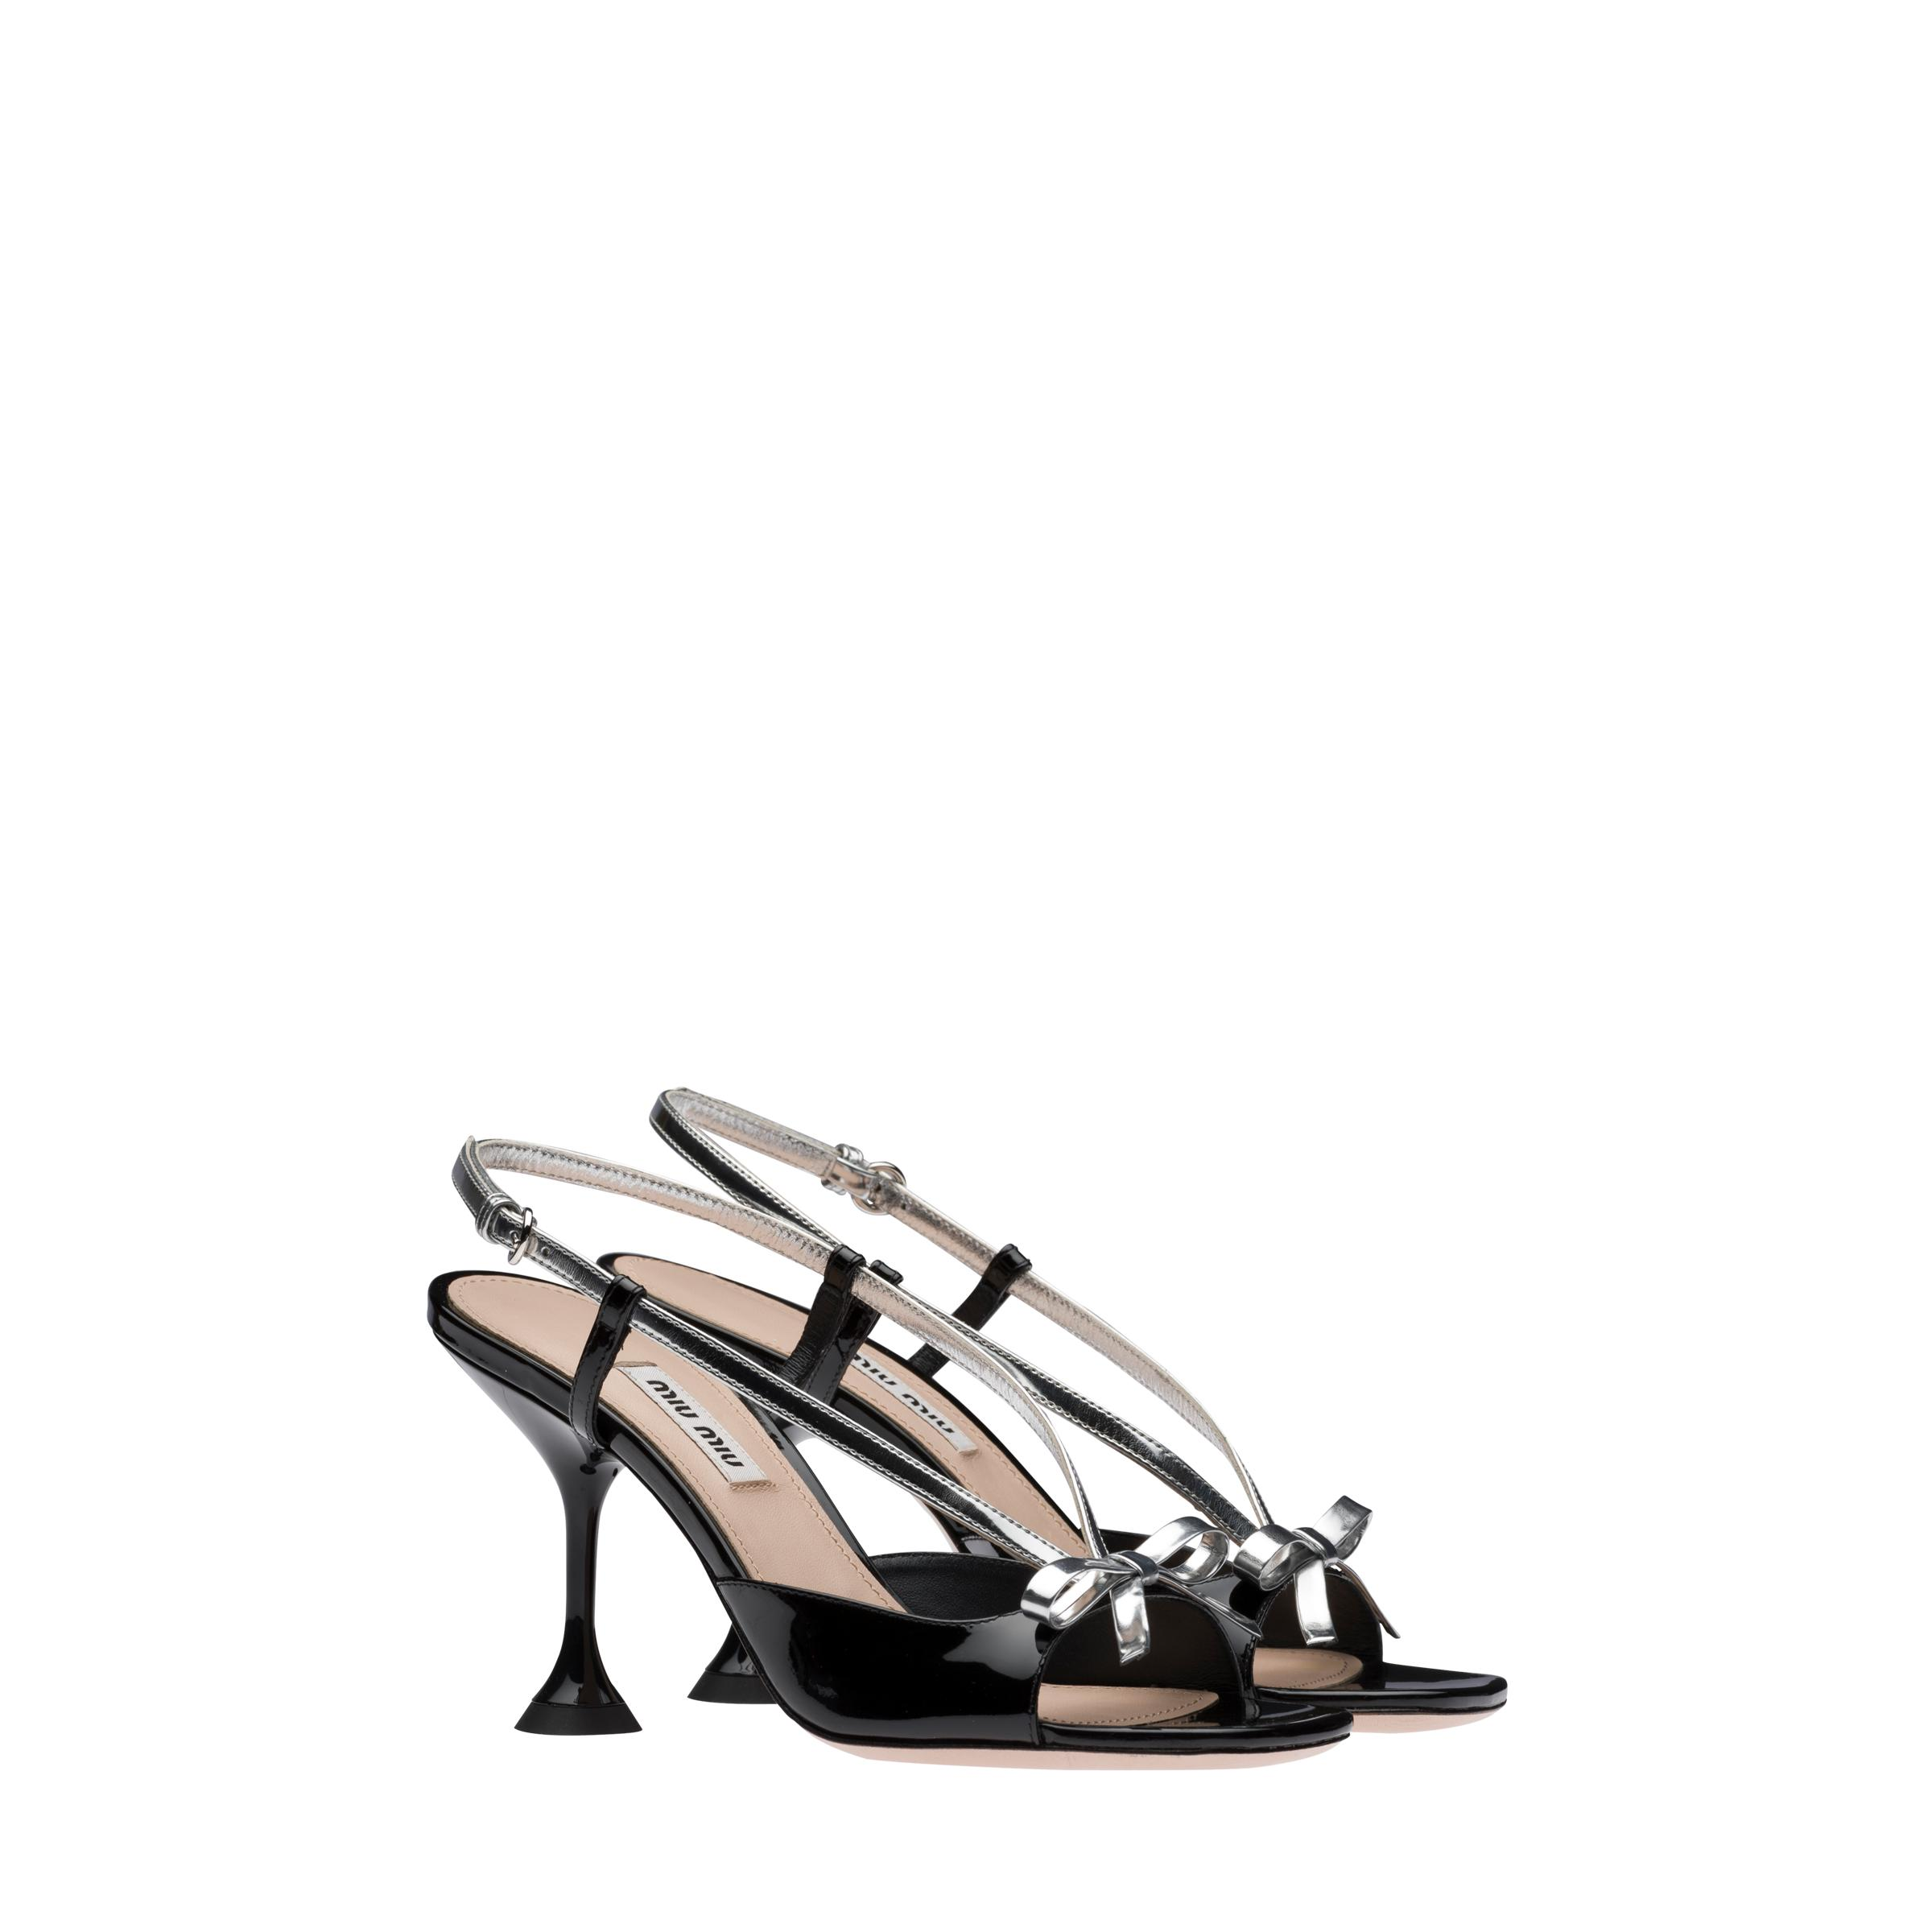 Patent Leather And Metallic Technical Fabric Sandals Women Black/silver